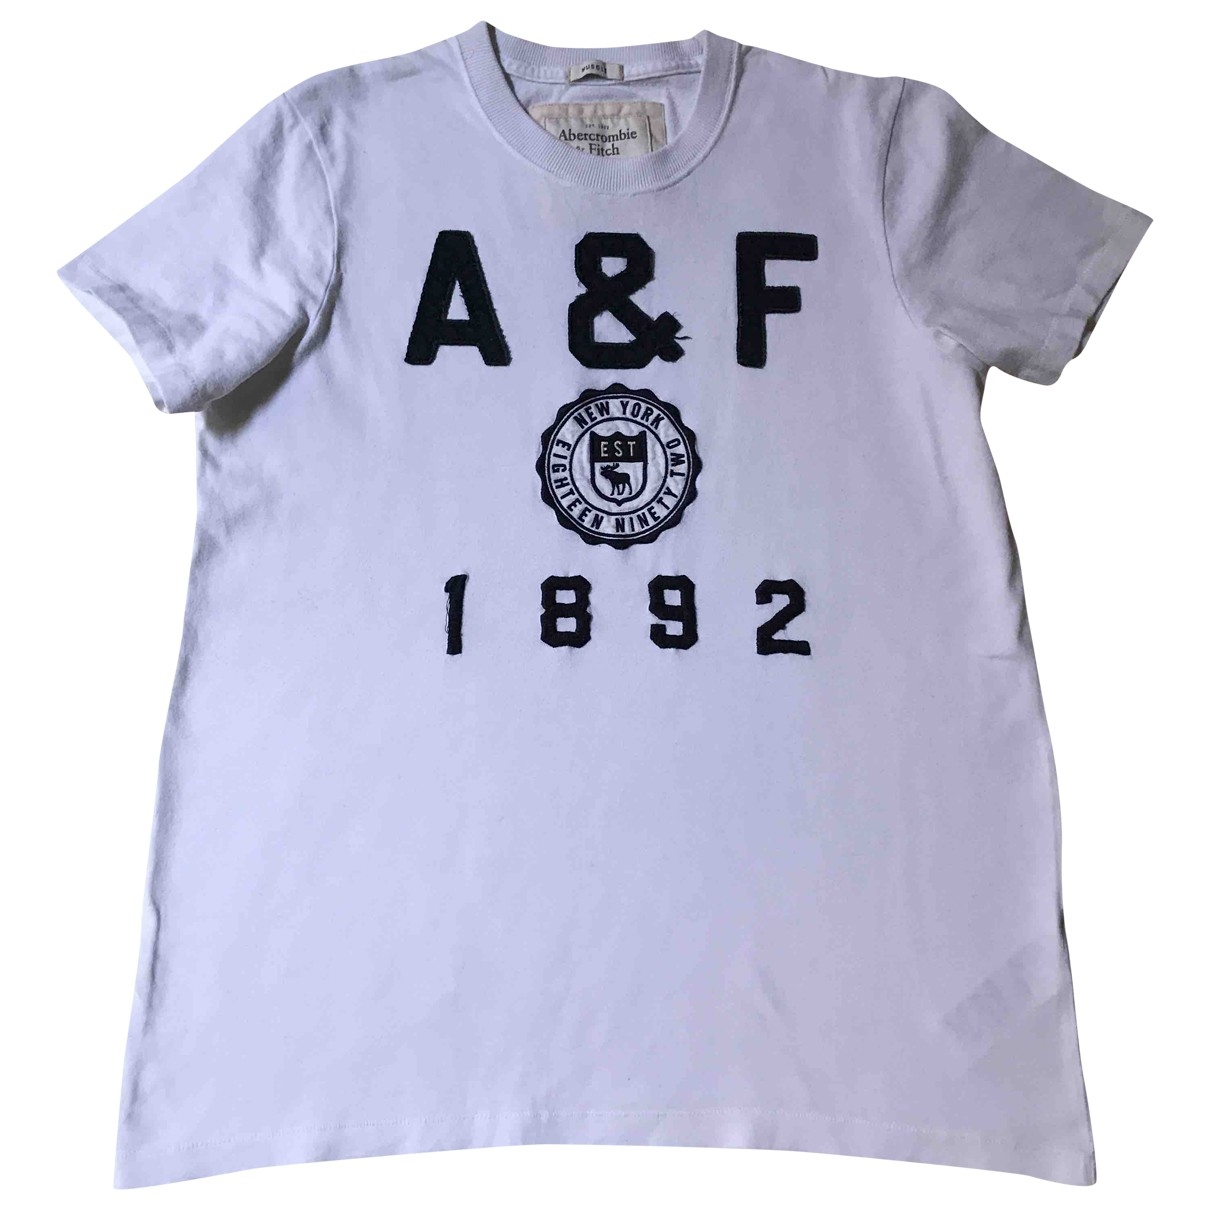 Abercrombie & Fitch \N White Cotton T-shirts for Men M International